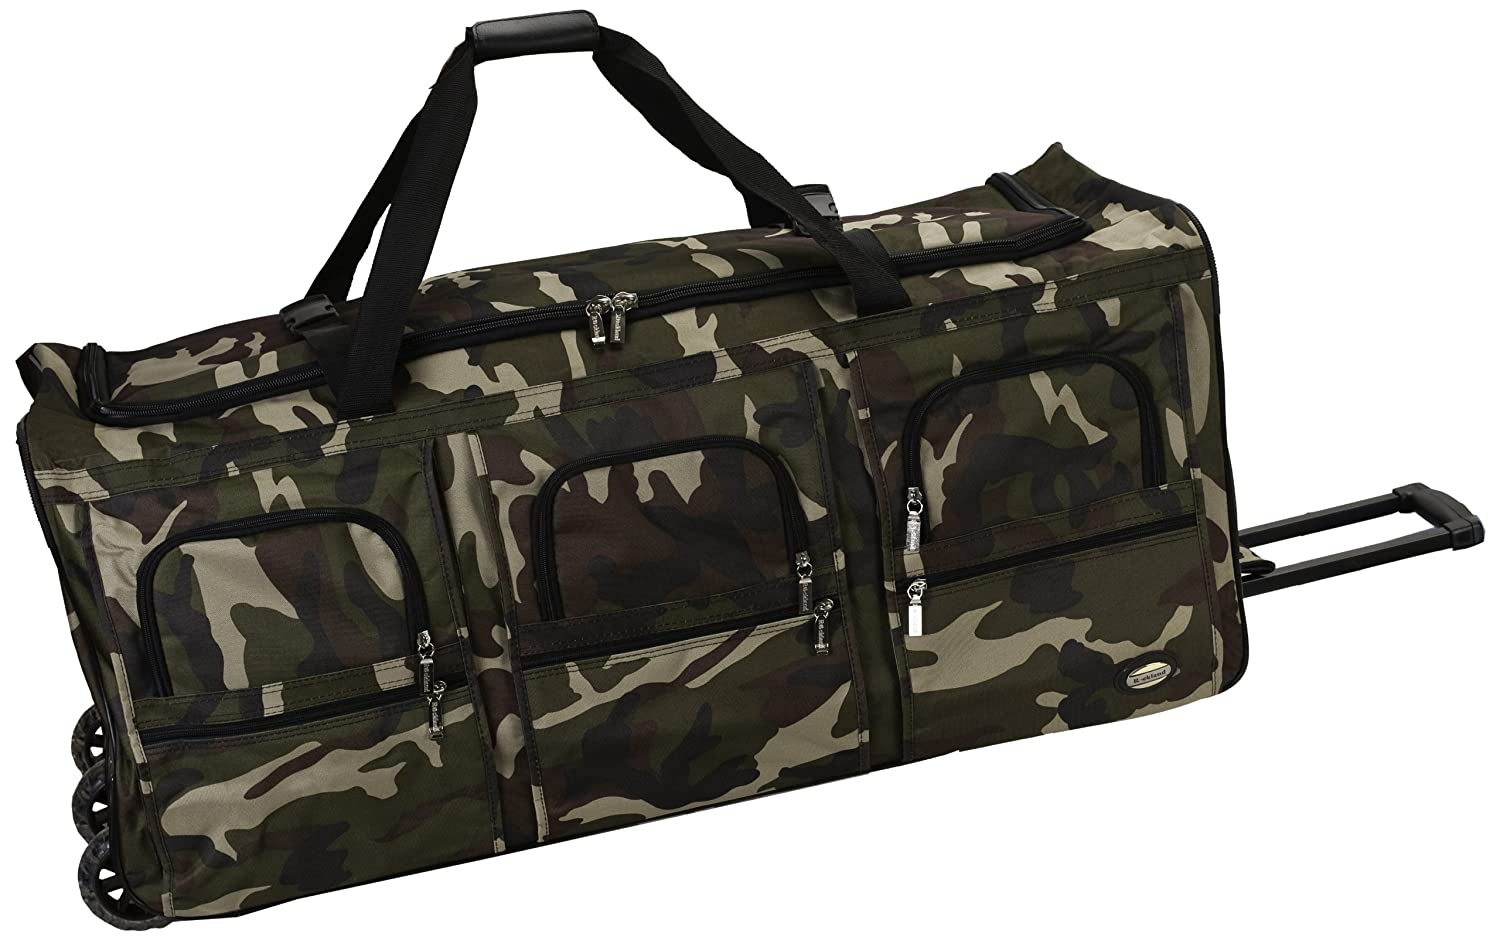 Rockland Luggage 40 Inch Rolling Duffle Bag, Camouflage, X Large